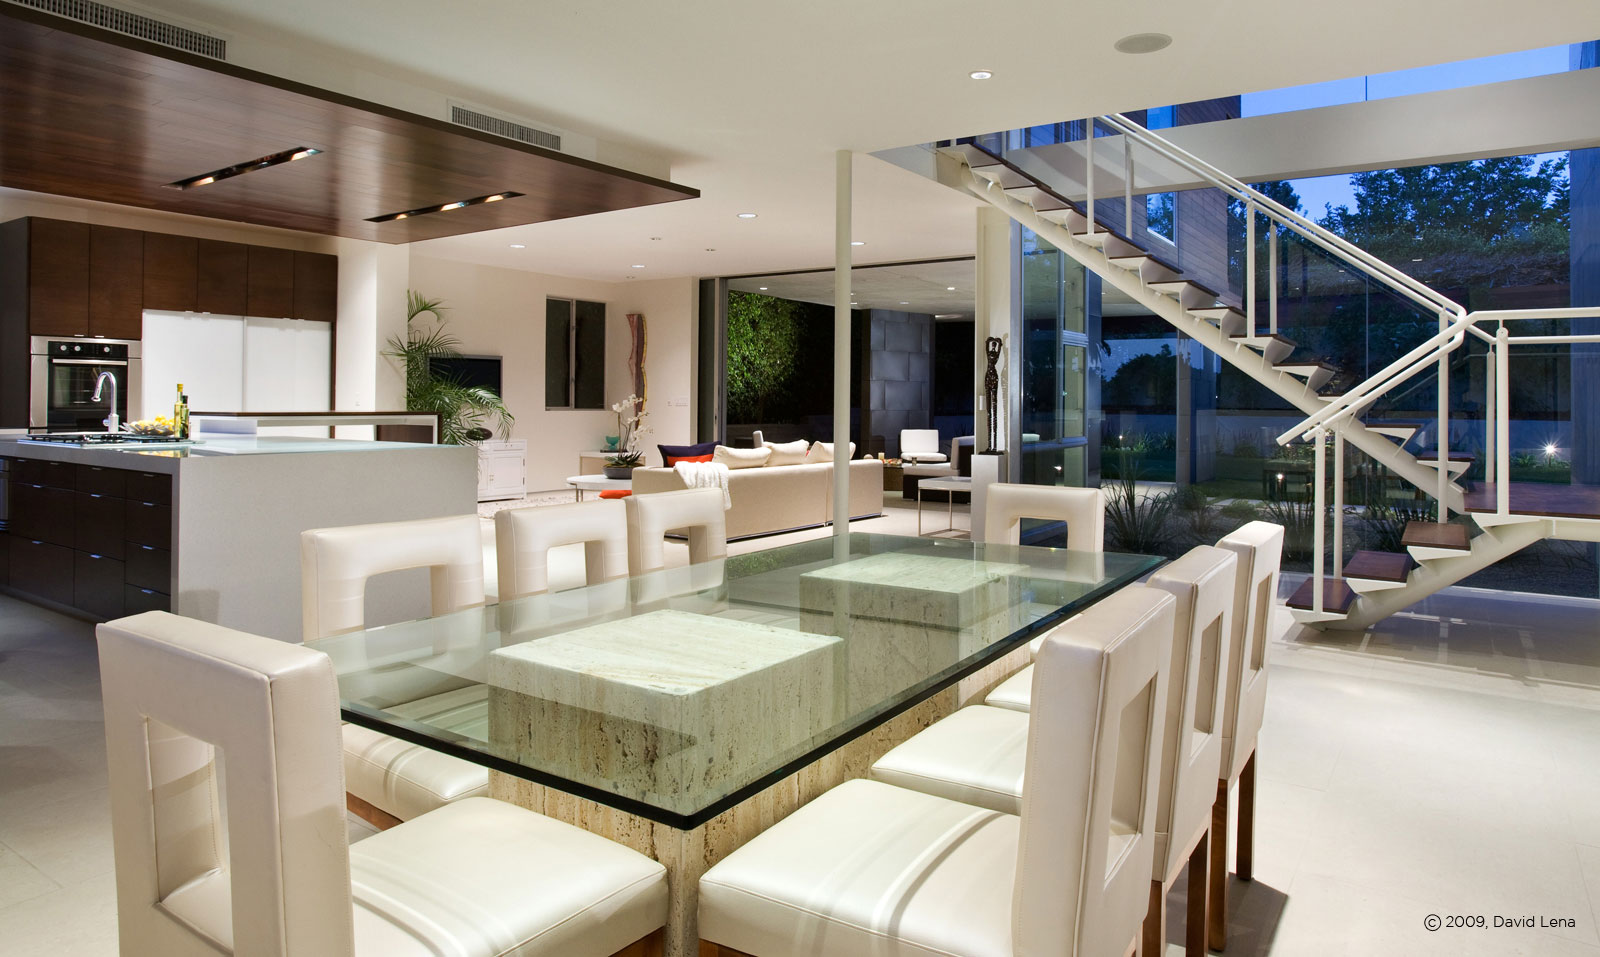 House Interior::Dream Home Kilrenney House By IKONIKO